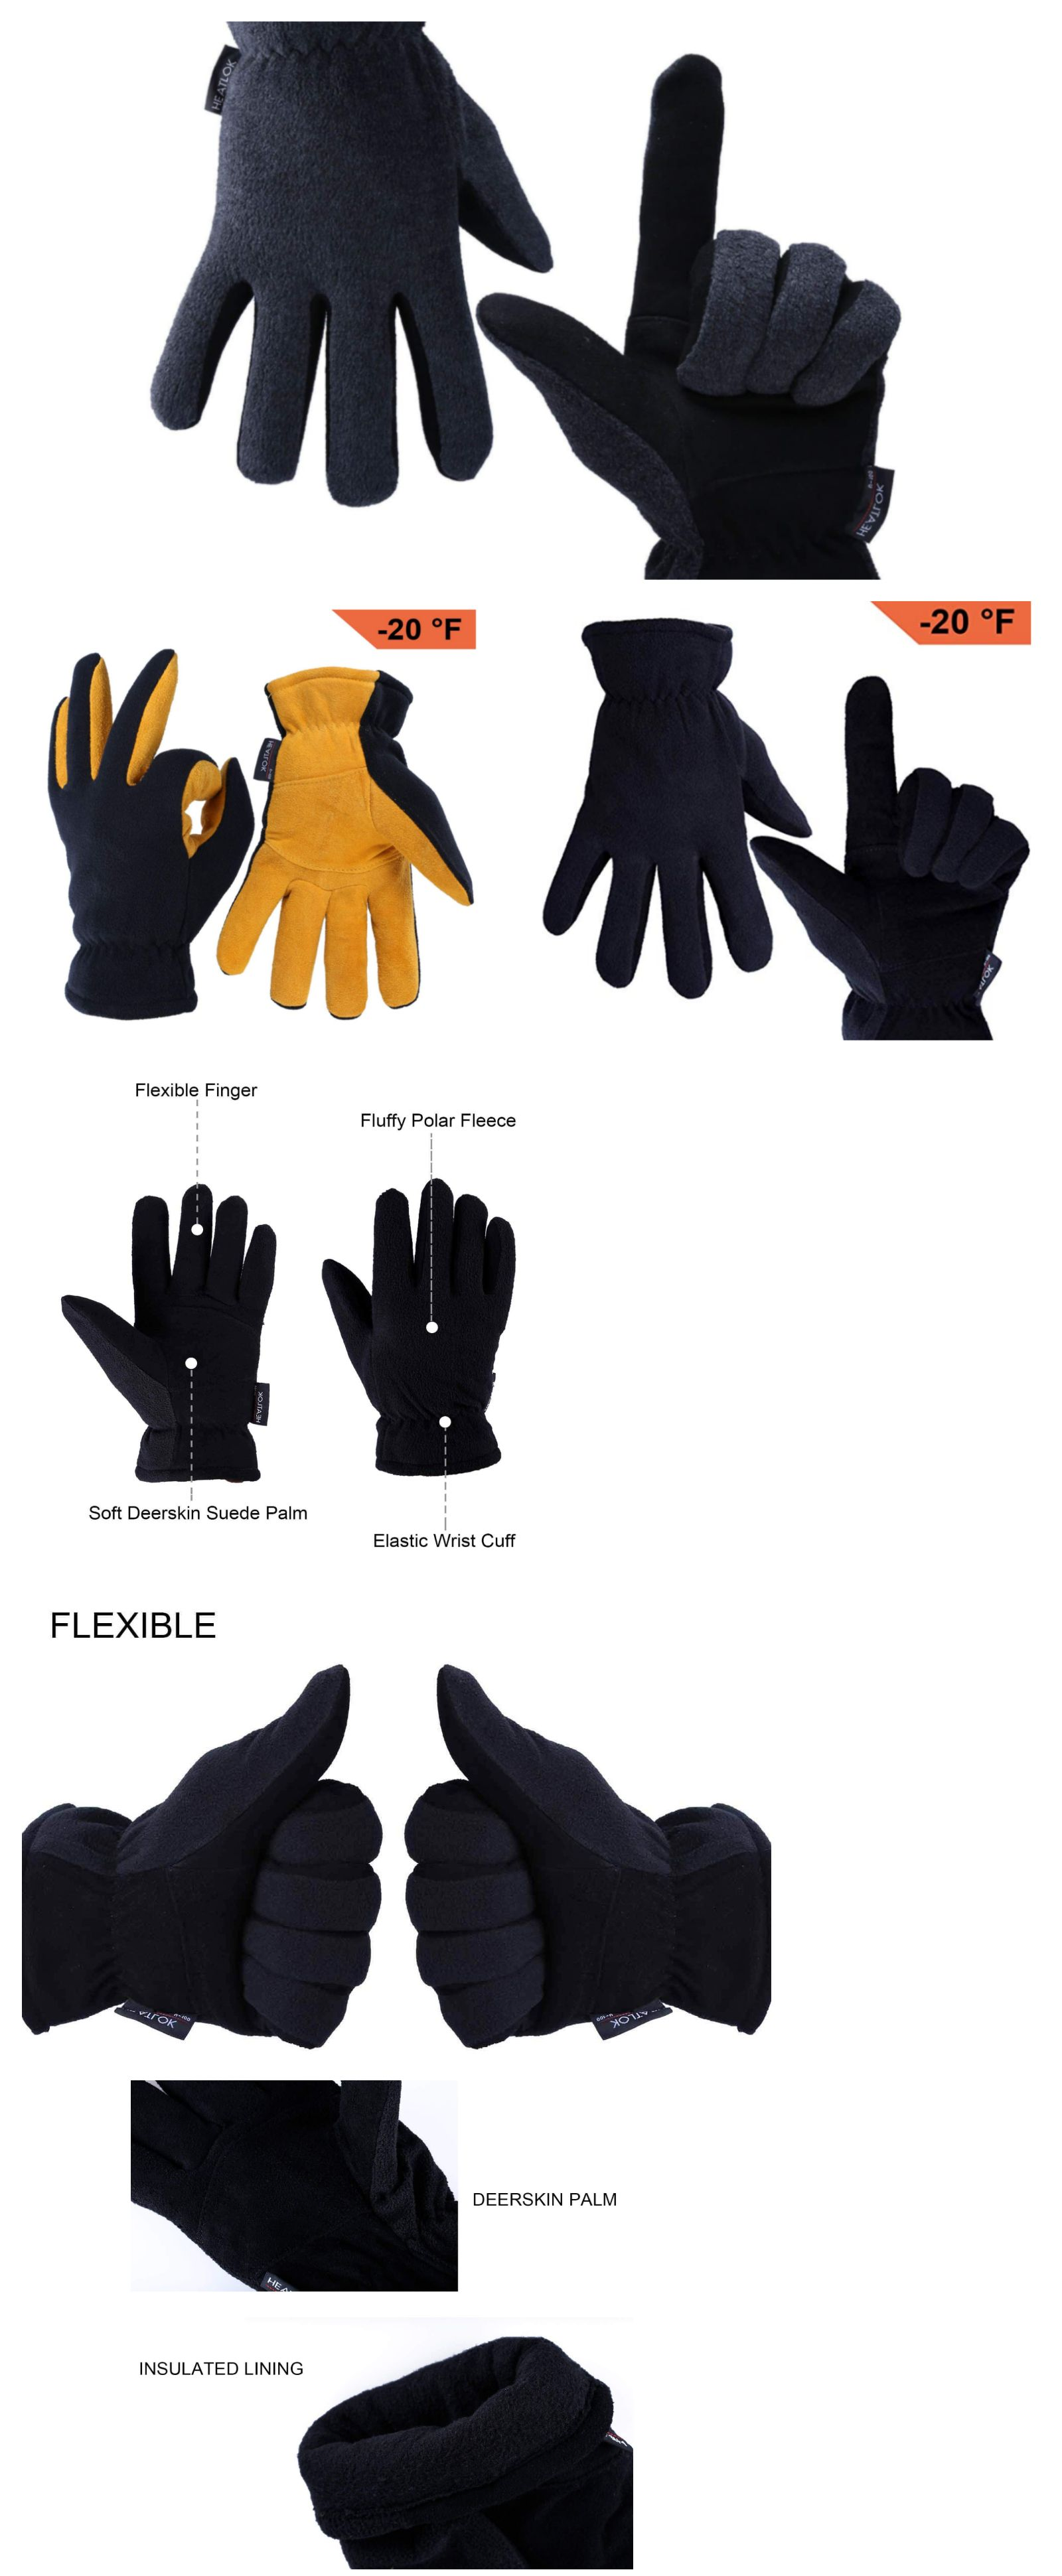 6c5fffc6e4409 Gloves and Mittens 169278: Ozero Winter Gloves Extreme Cold Weather 0Zero  Thermal Work Unisex Men Women New -> BUY IT NOW ONLY: $24.89 on #eBay # gloves ...